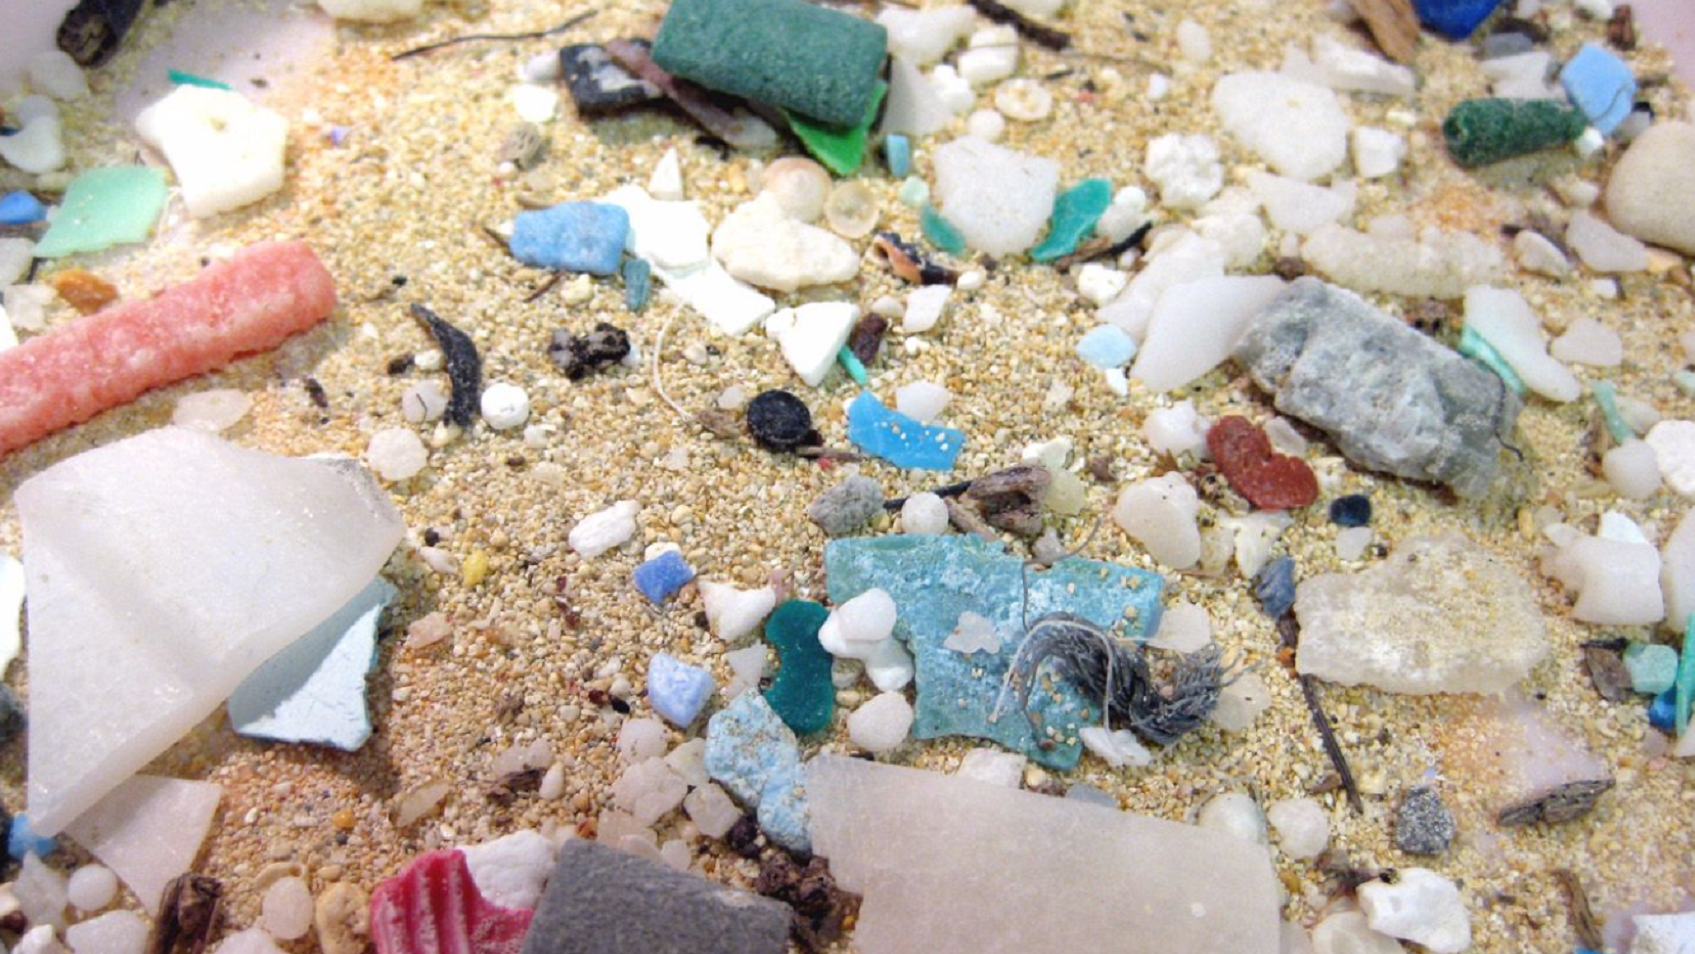 Micro plastics found in the ocean.